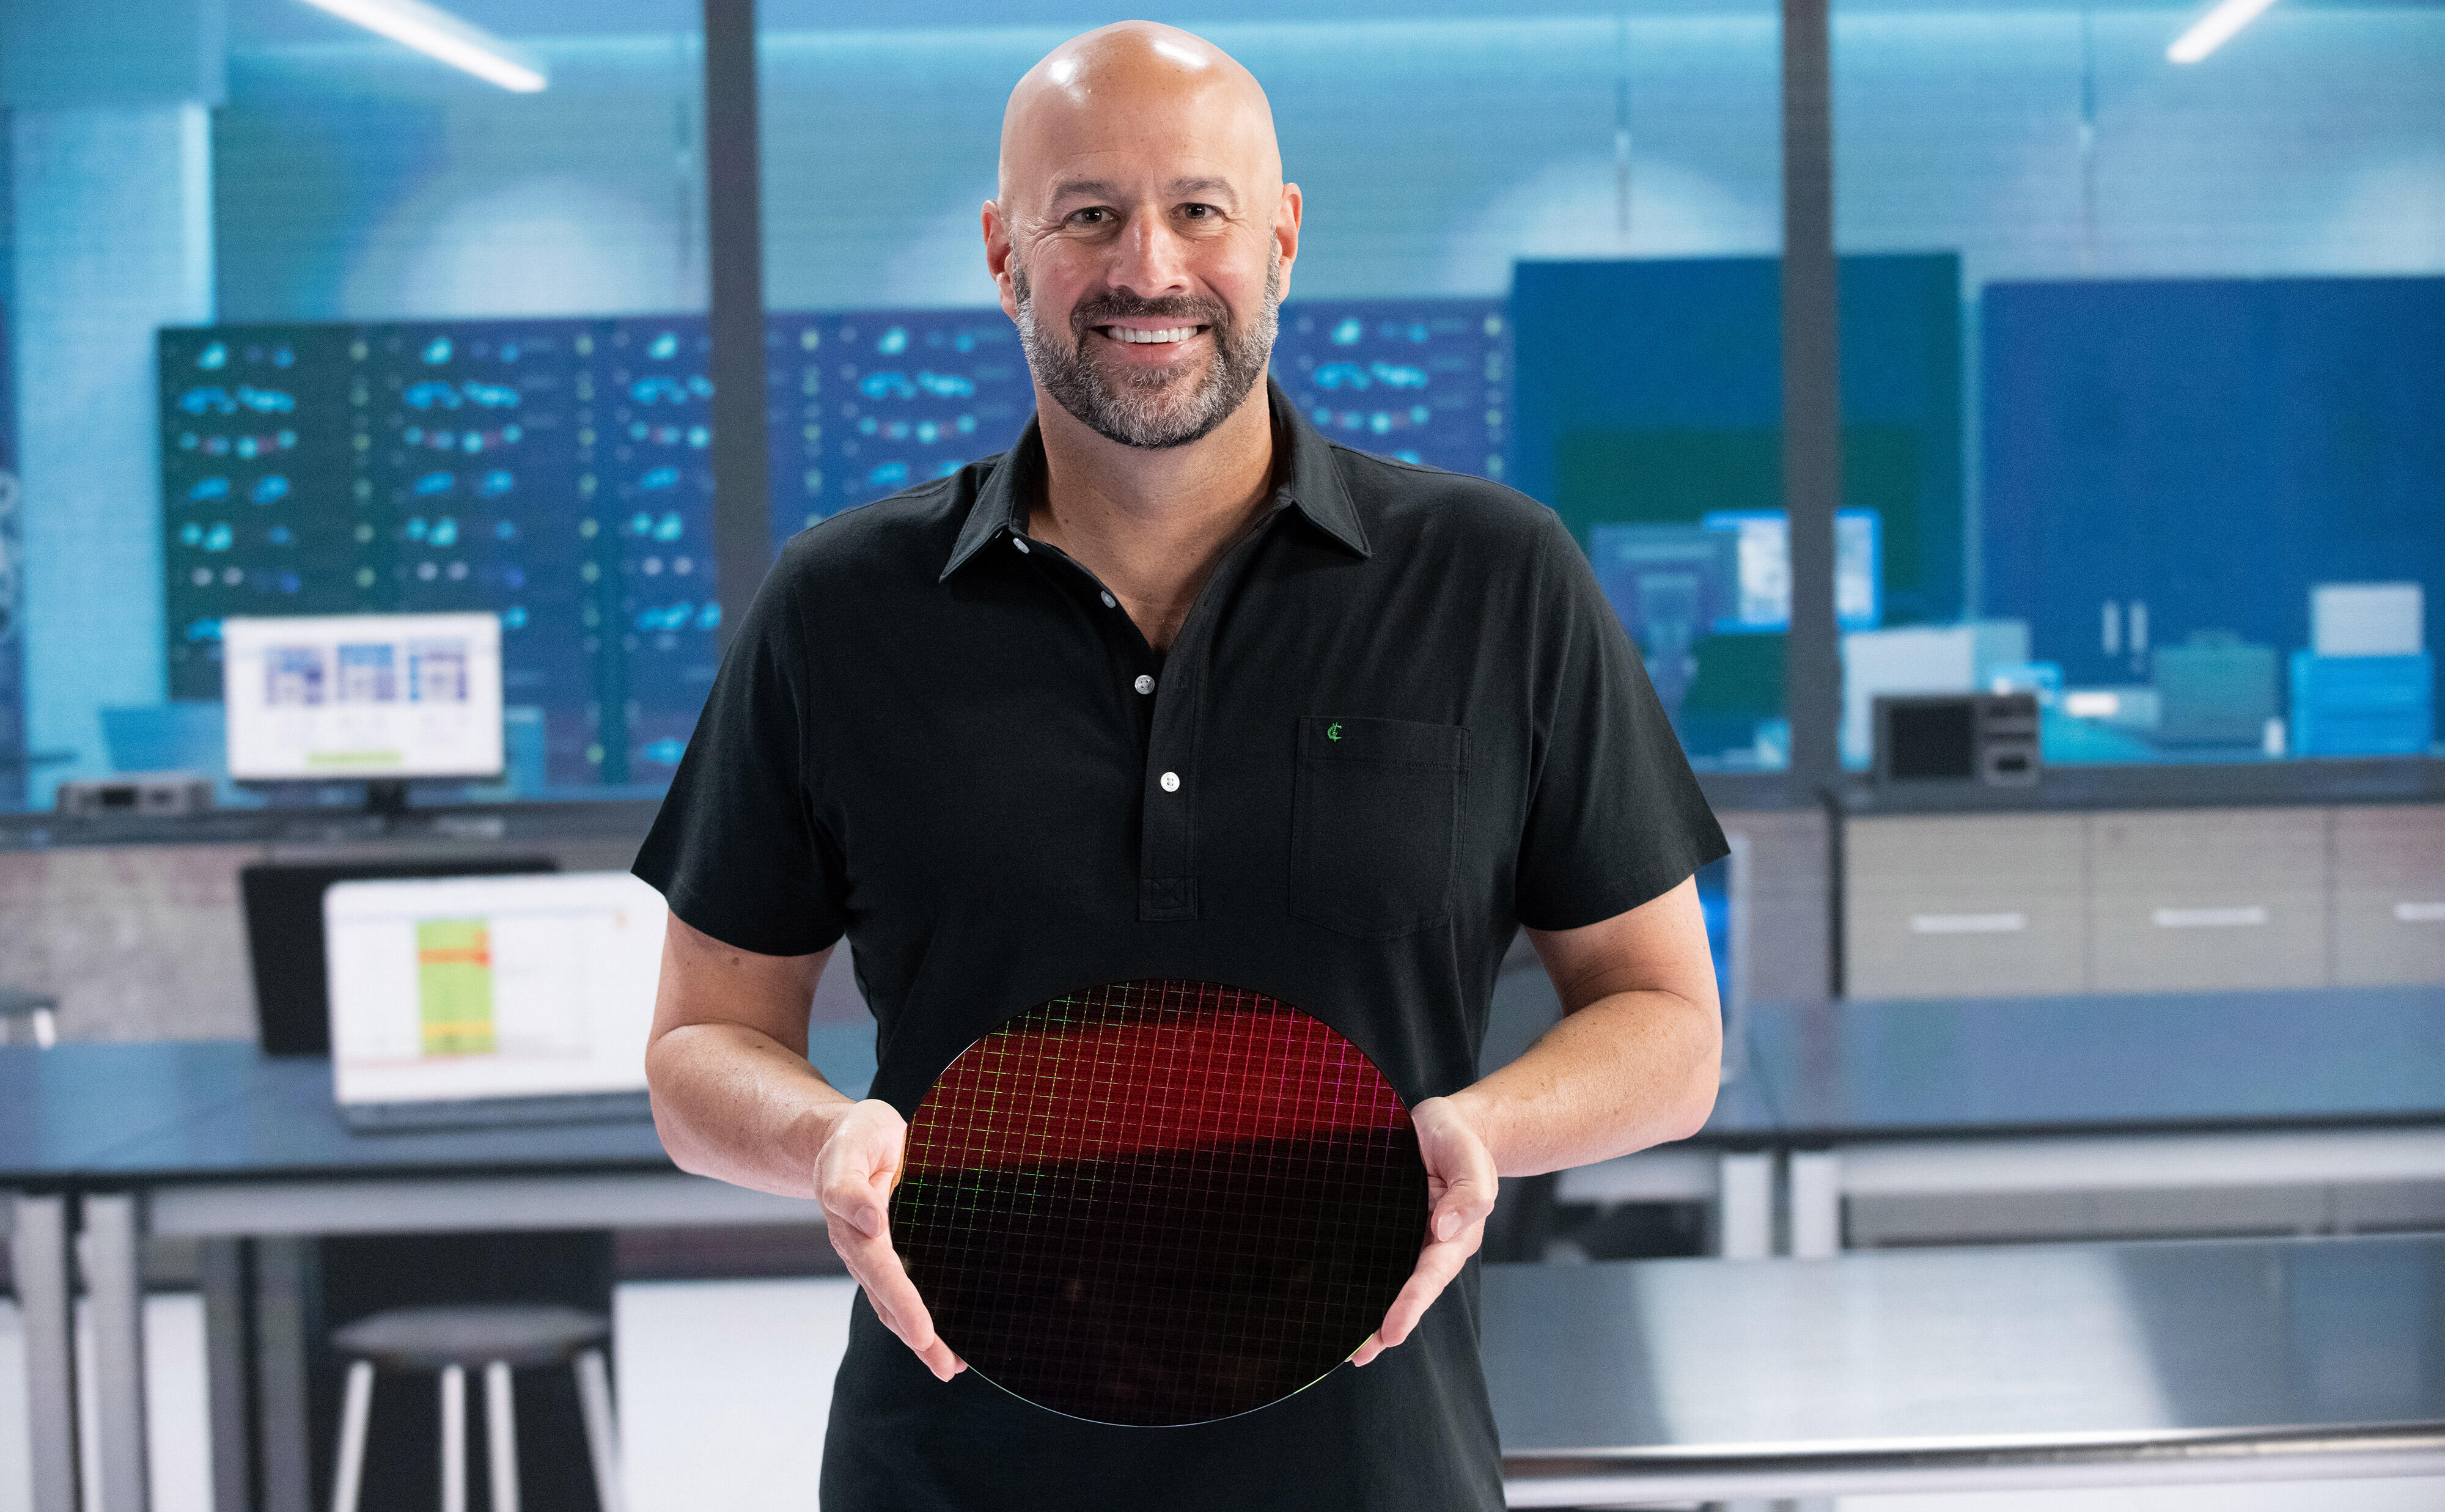 Gregory Bryant, leader of Intel's PC chip business, holds a 300mm wide wafer with hundreds of Tiger Lake processors.